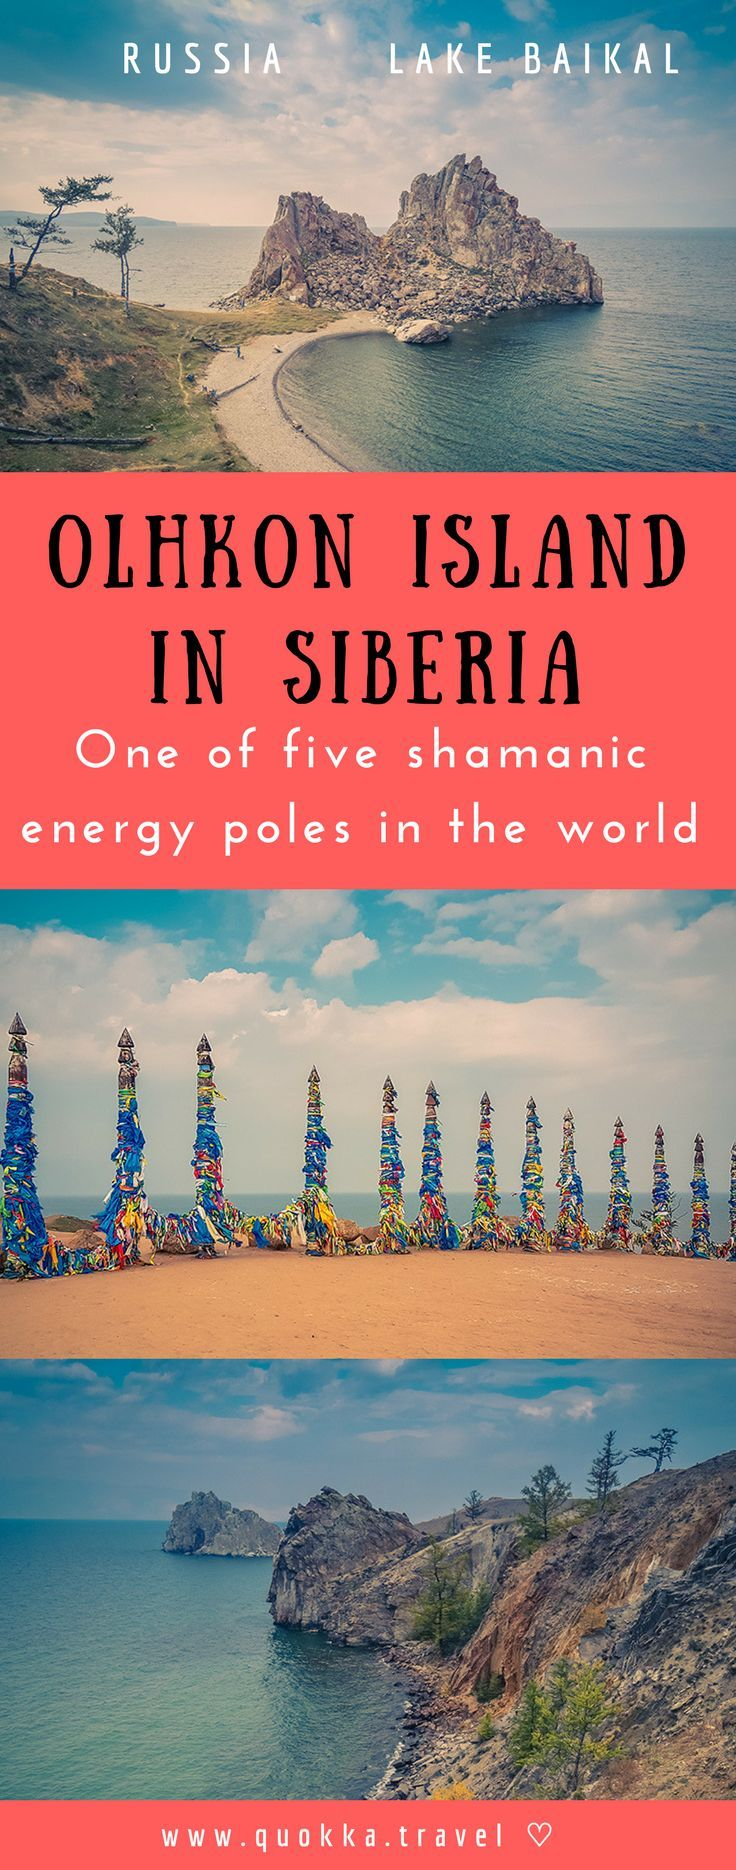 We share all you need to know for your visit to Olkhon island, Russia: A Siberian spiritual island in Lake Baikal where the clock stopped ticking. In this article we share all you need to know for your visit to Olkhon island: 5 reasons to visit Olkhon island, Where to stay, Great things to do on Olkhon island, How to get there and Travel tips for the perfect trip. Travel in Asia.